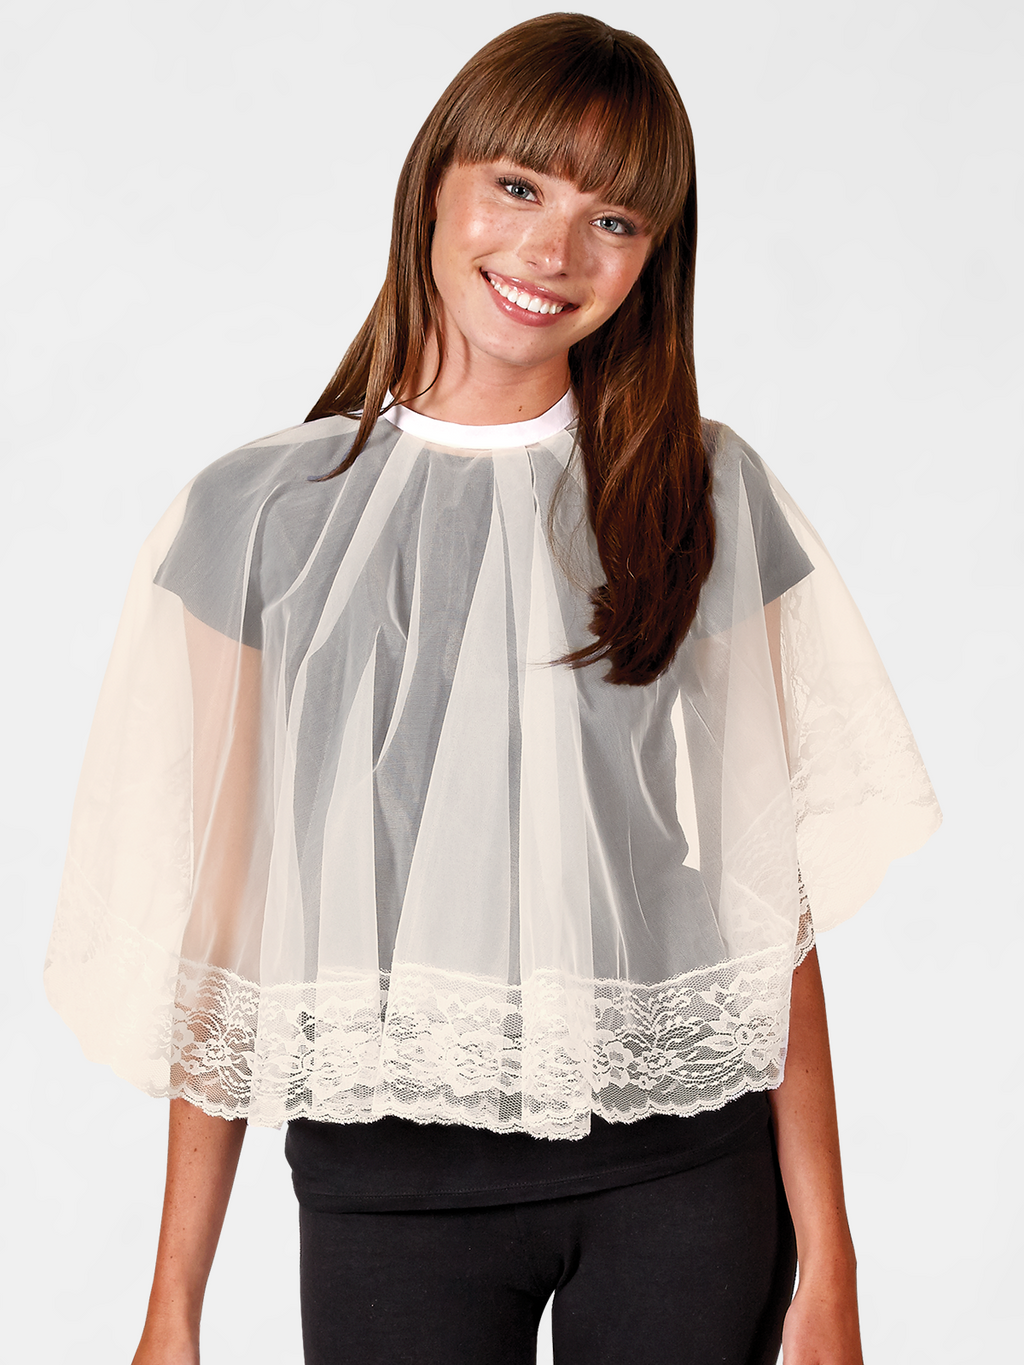 Wil-o-Wisp Comb-Out Cape, Short Lace Hair Styling Cape Beige | Betty Dain Salon Apparel